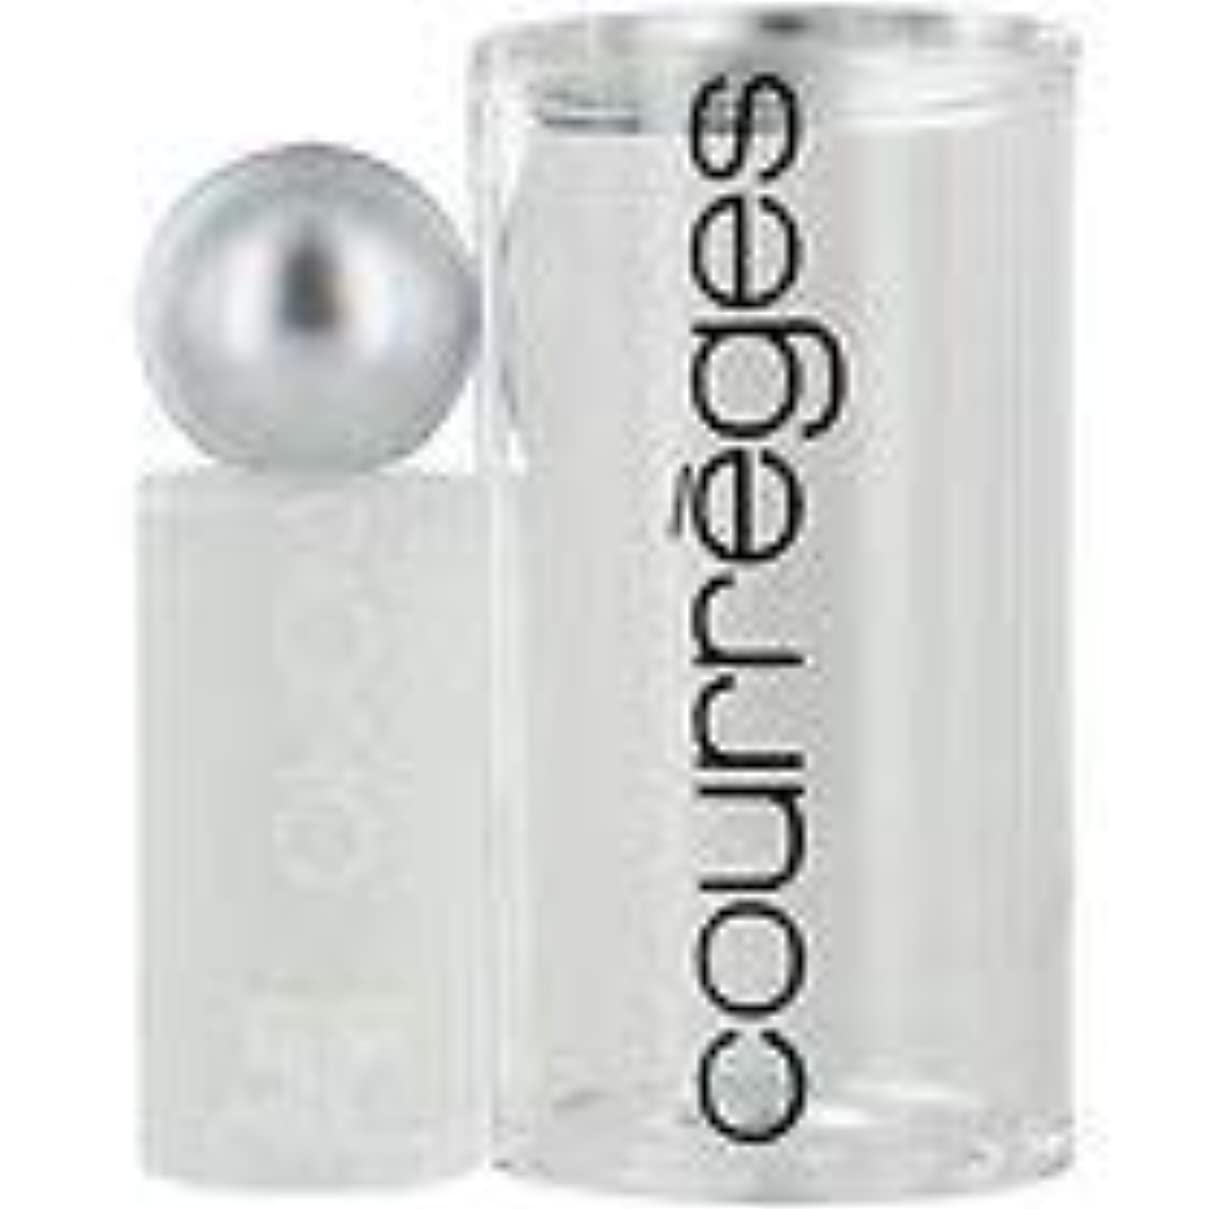 砂漠パス許すCourreges 2020 (クレージュ 2020)  1.0 oz (30ml) EDT Spray by Courreges for Women